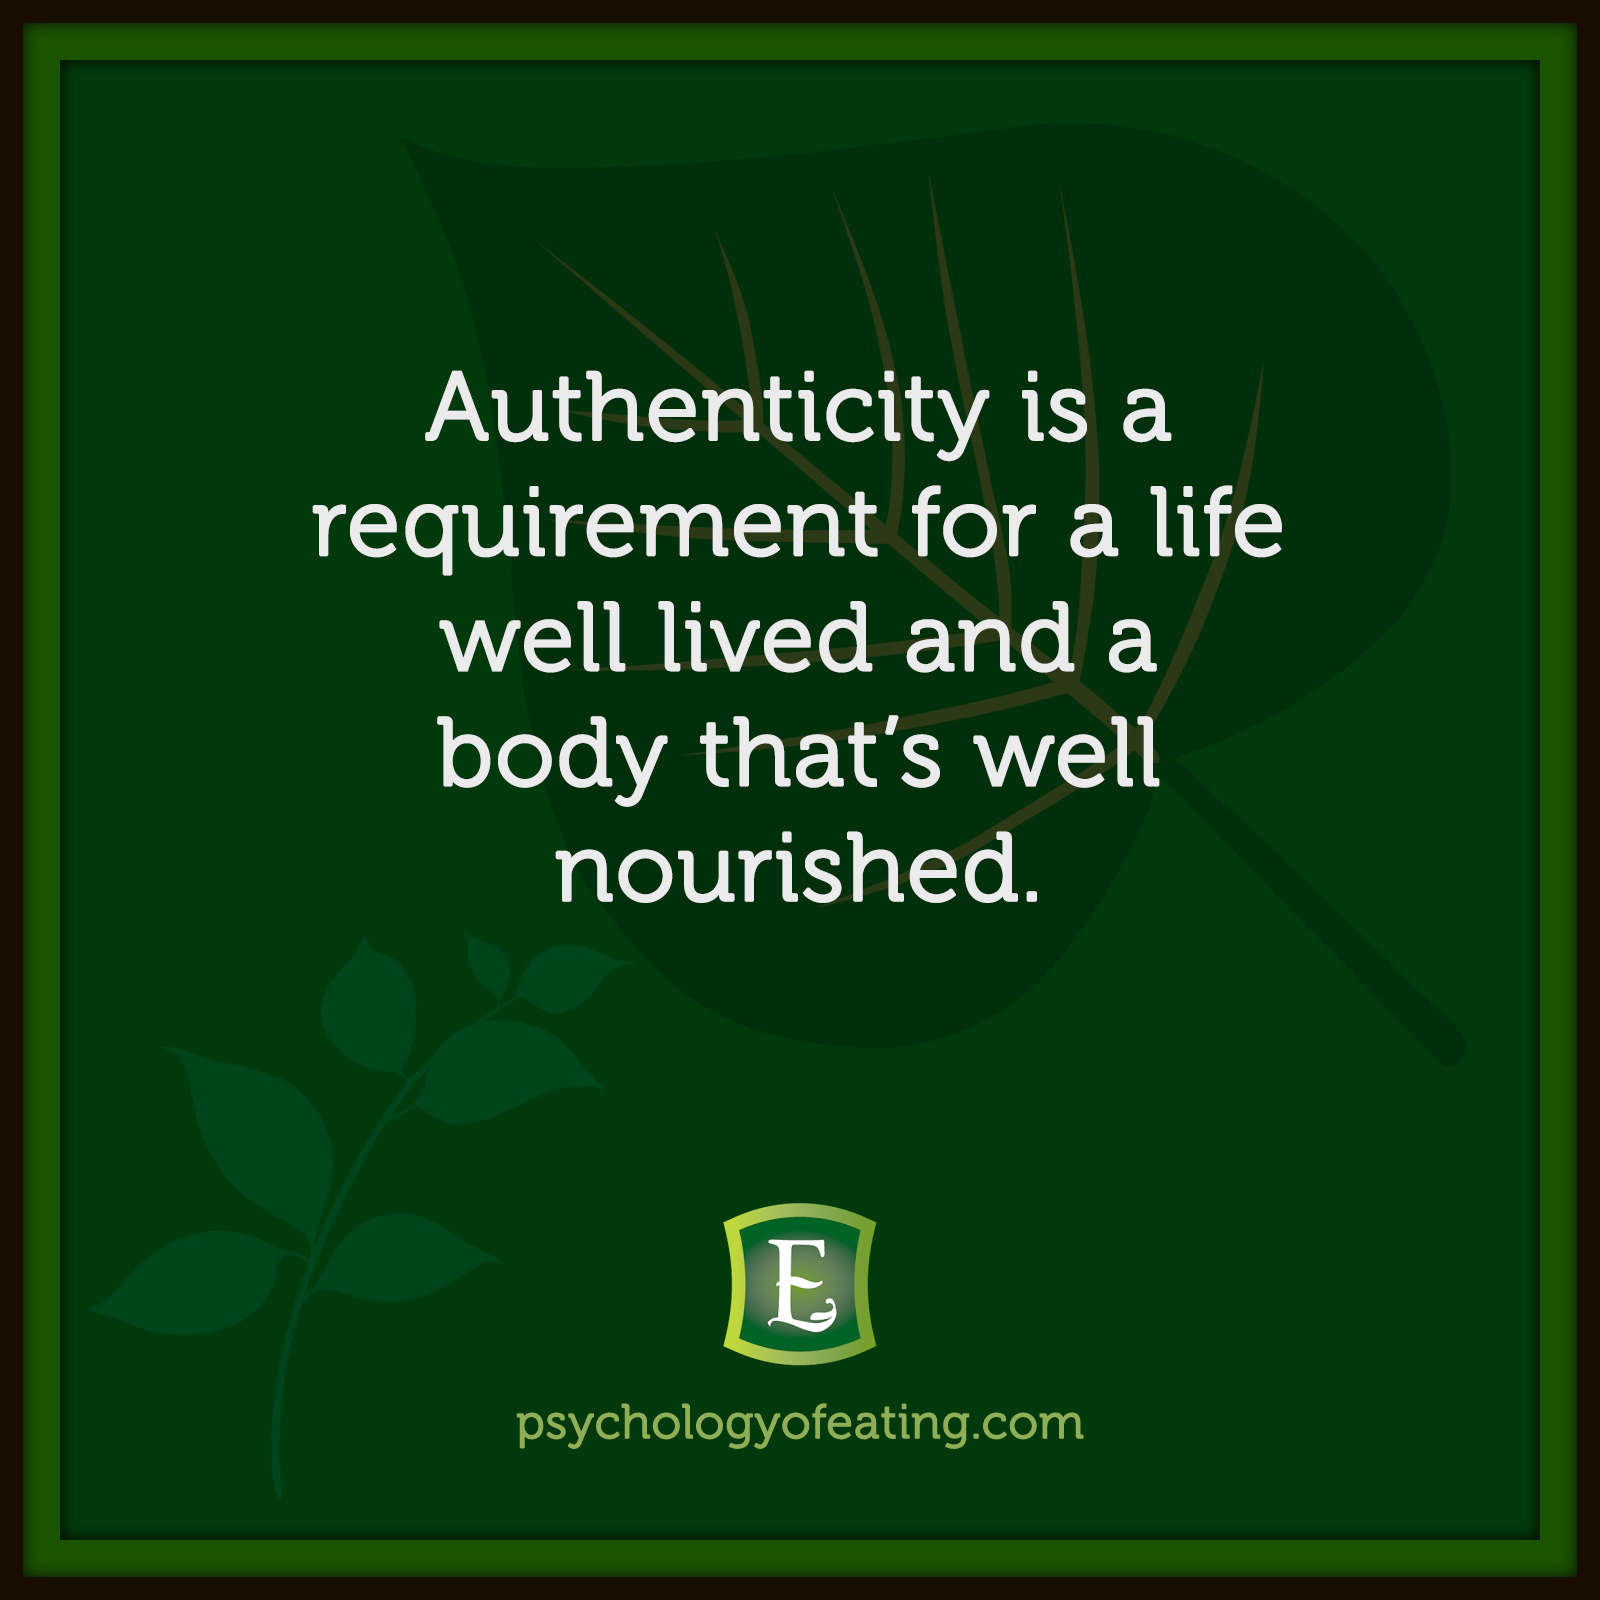 Authenticity is a requirement for a life well lived and a body that's well nourished. #health #nutrition #eatingpsychology #IPE